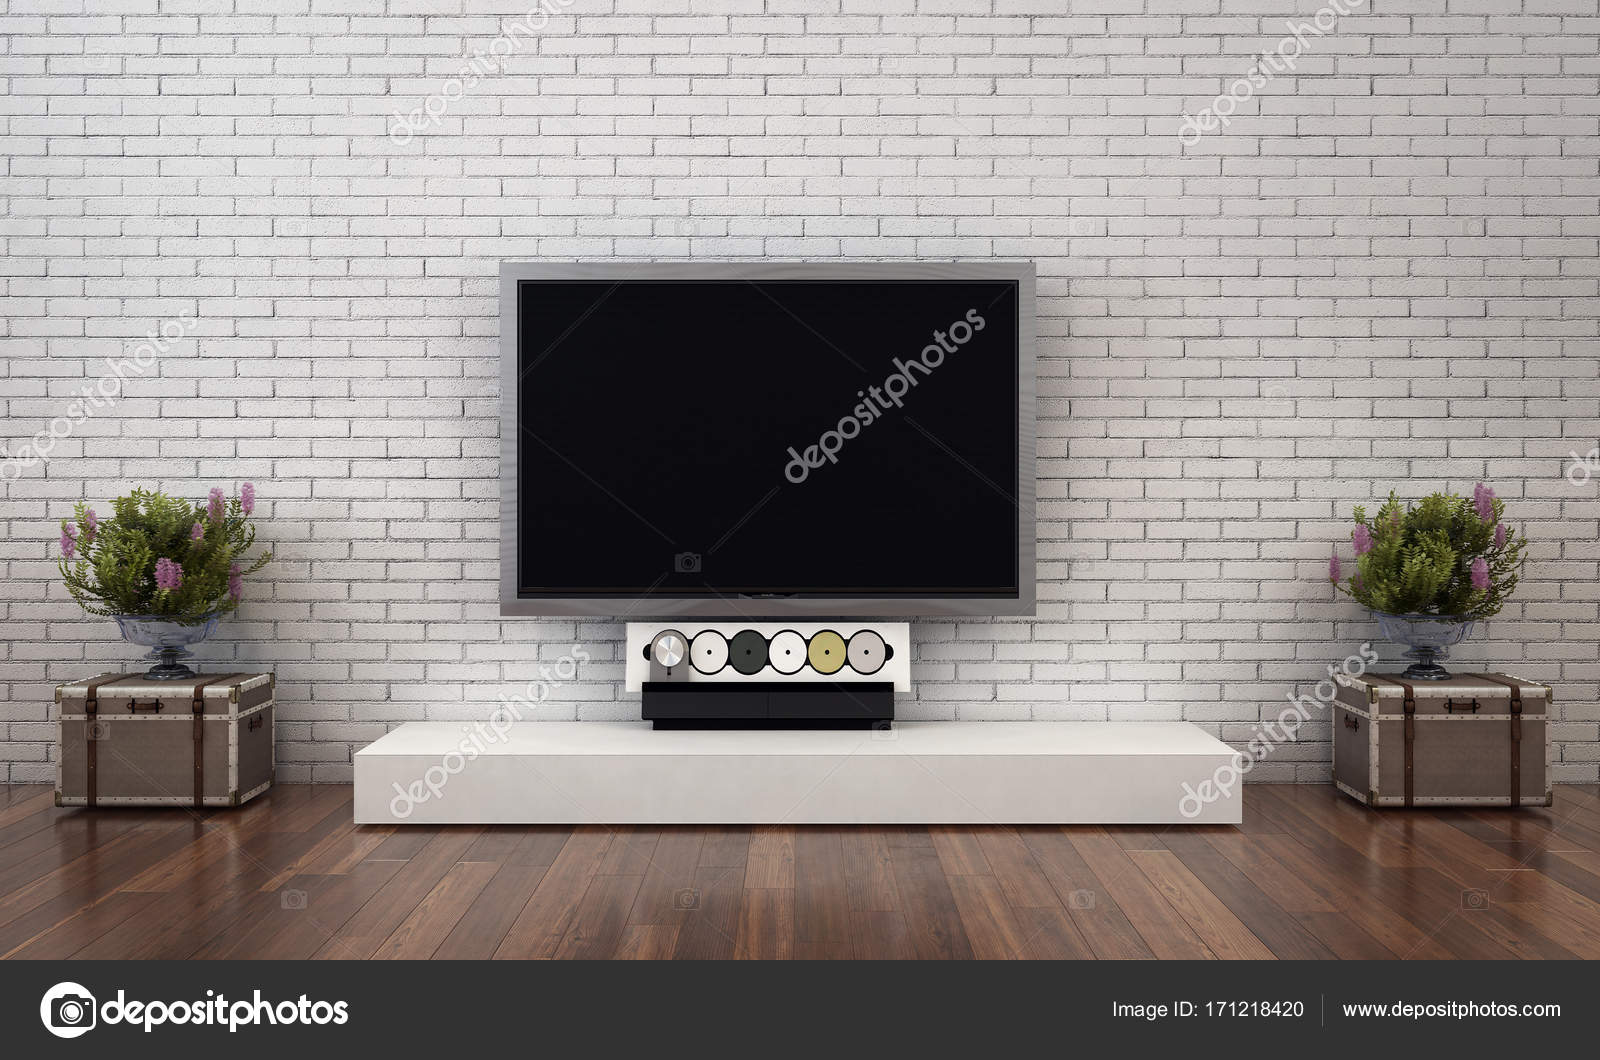 3d rendering interior design of living room concept idea photo by